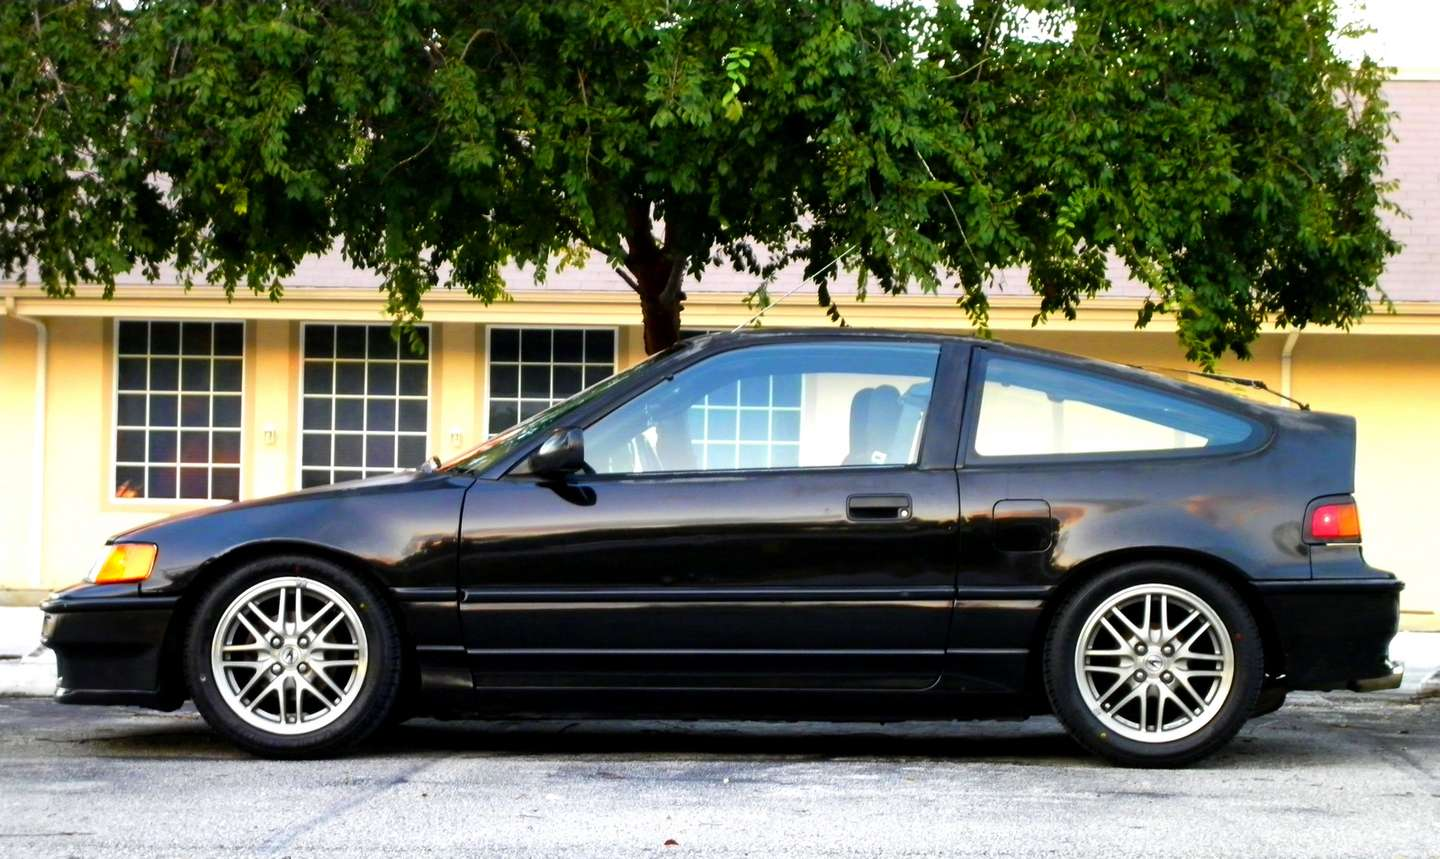 Honda Civic CRX #8322793